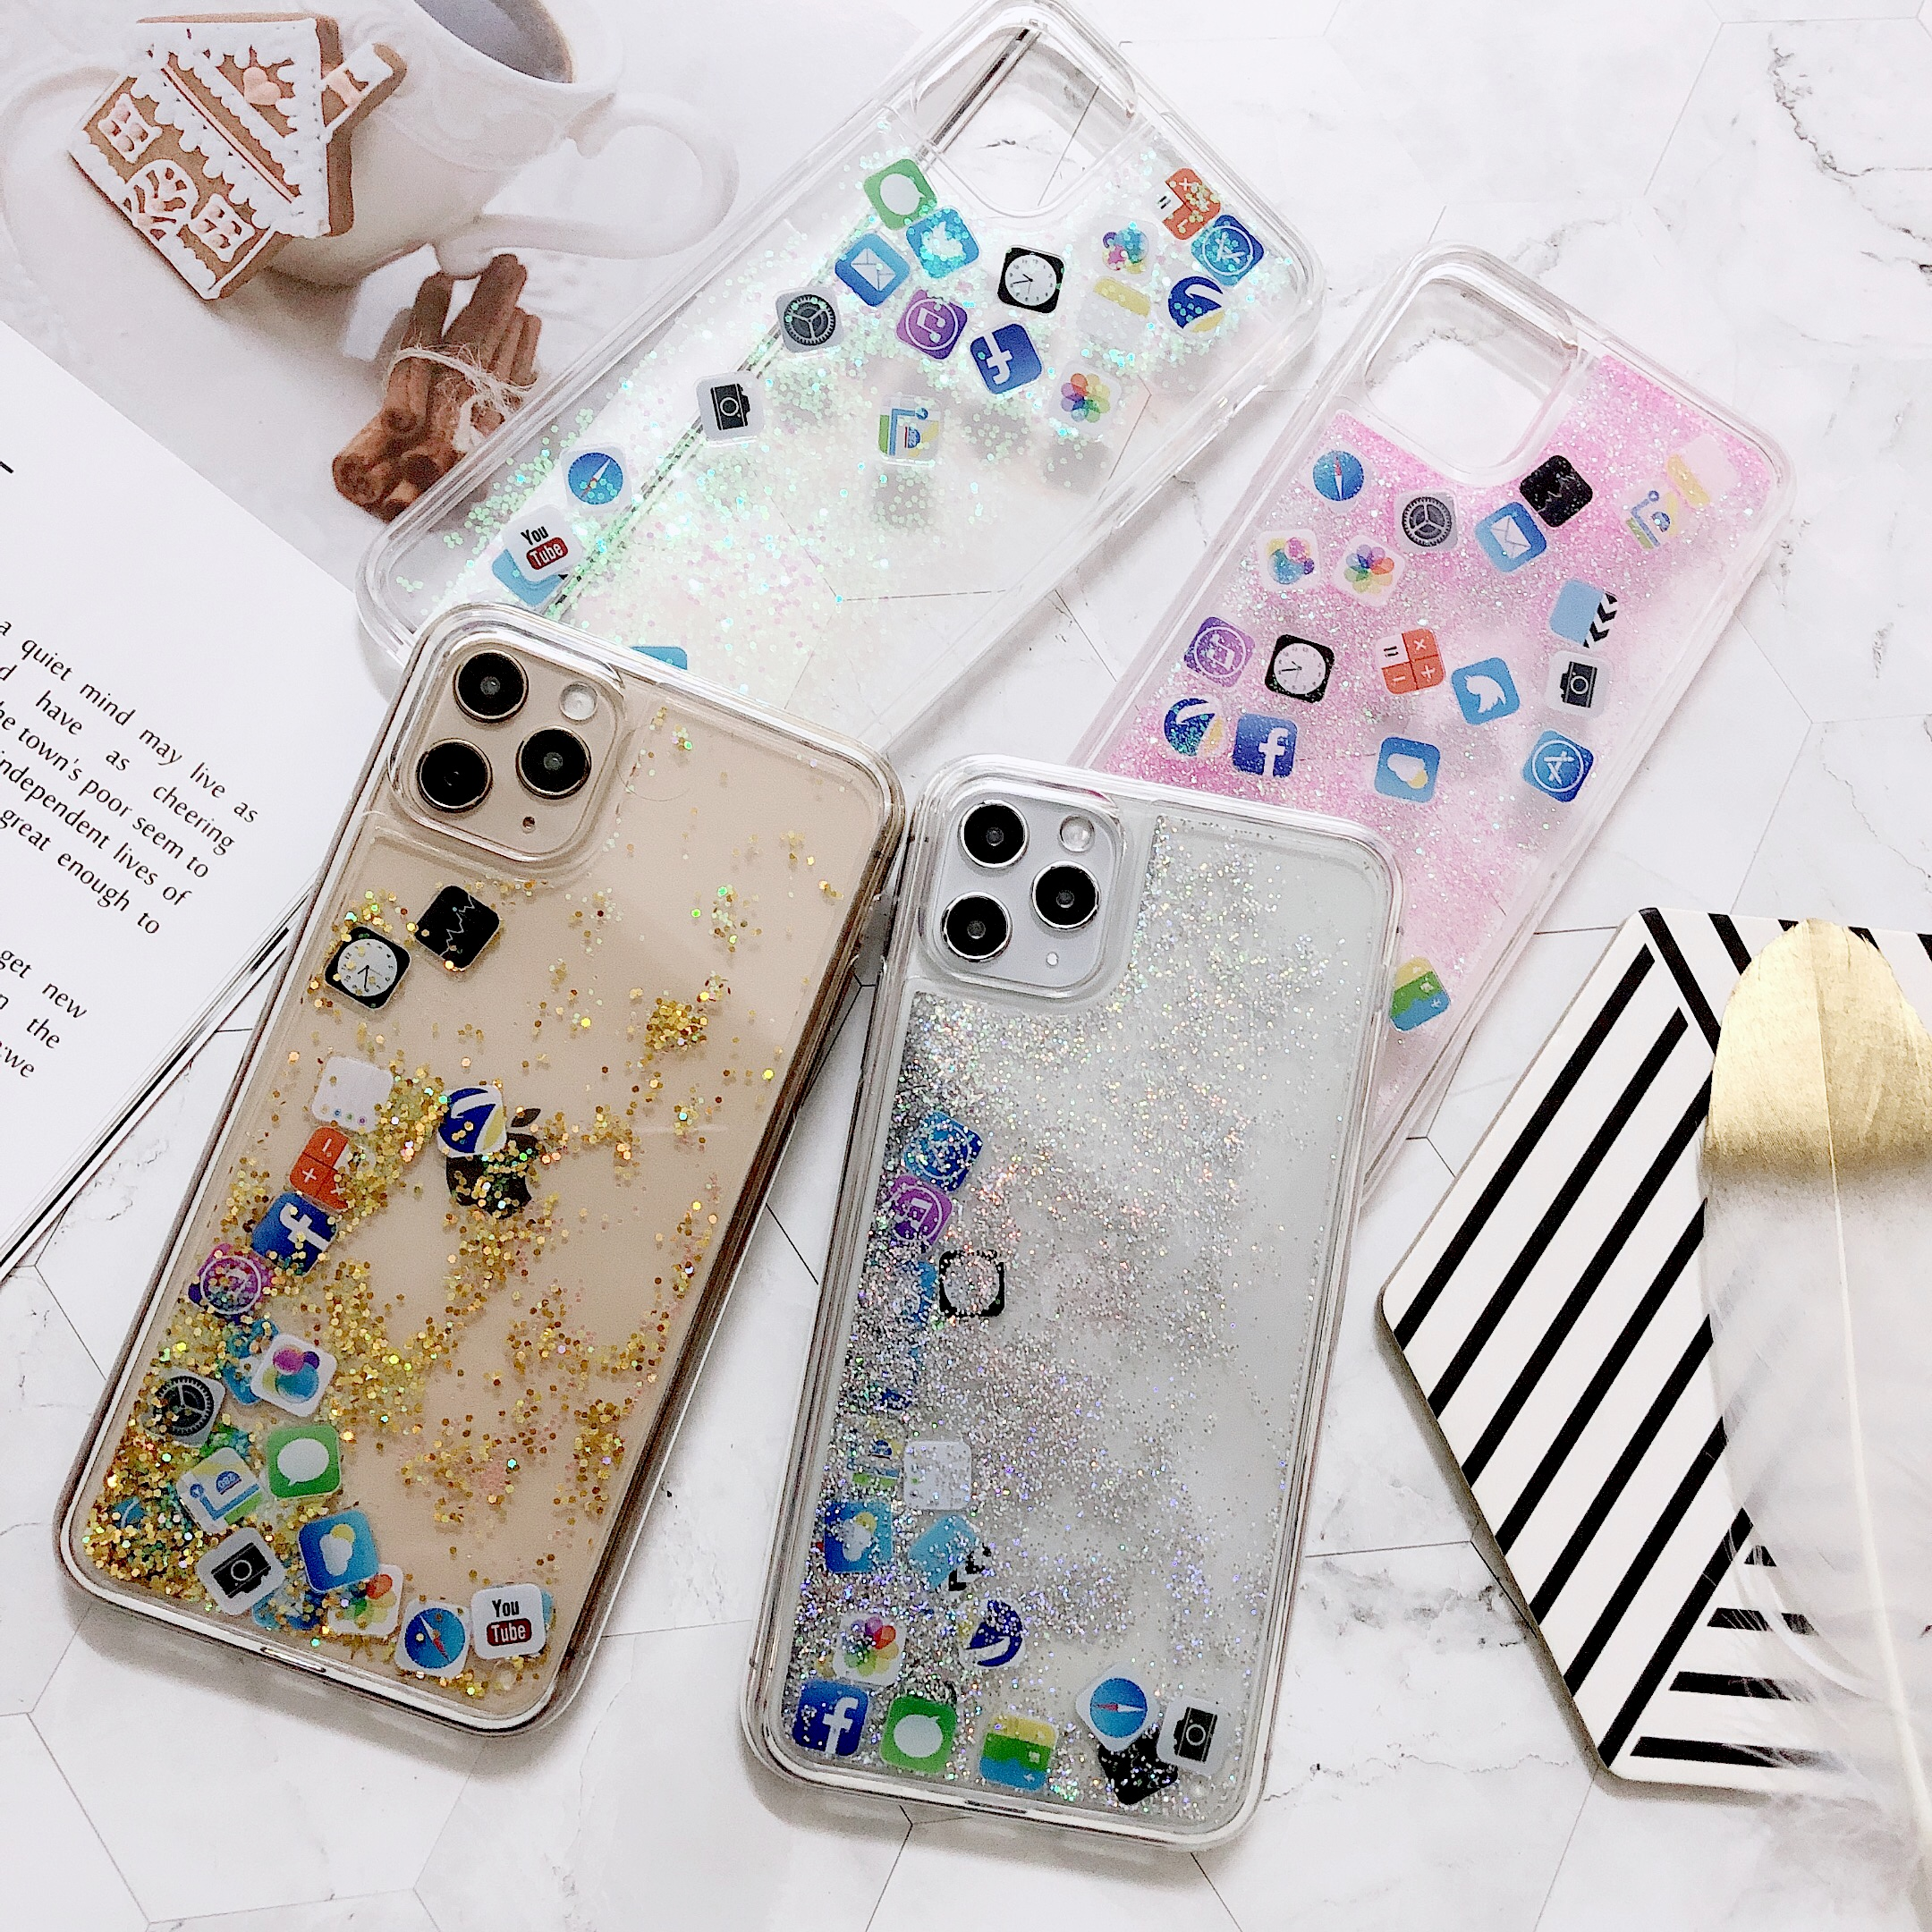 Dynamic Liquid Glitter Star Phone Case For iPhone Xs Max X Xr iPhone 7 8 6 6s Plus iPhone 11 Pro Max APP icon Hard PC Cover case image